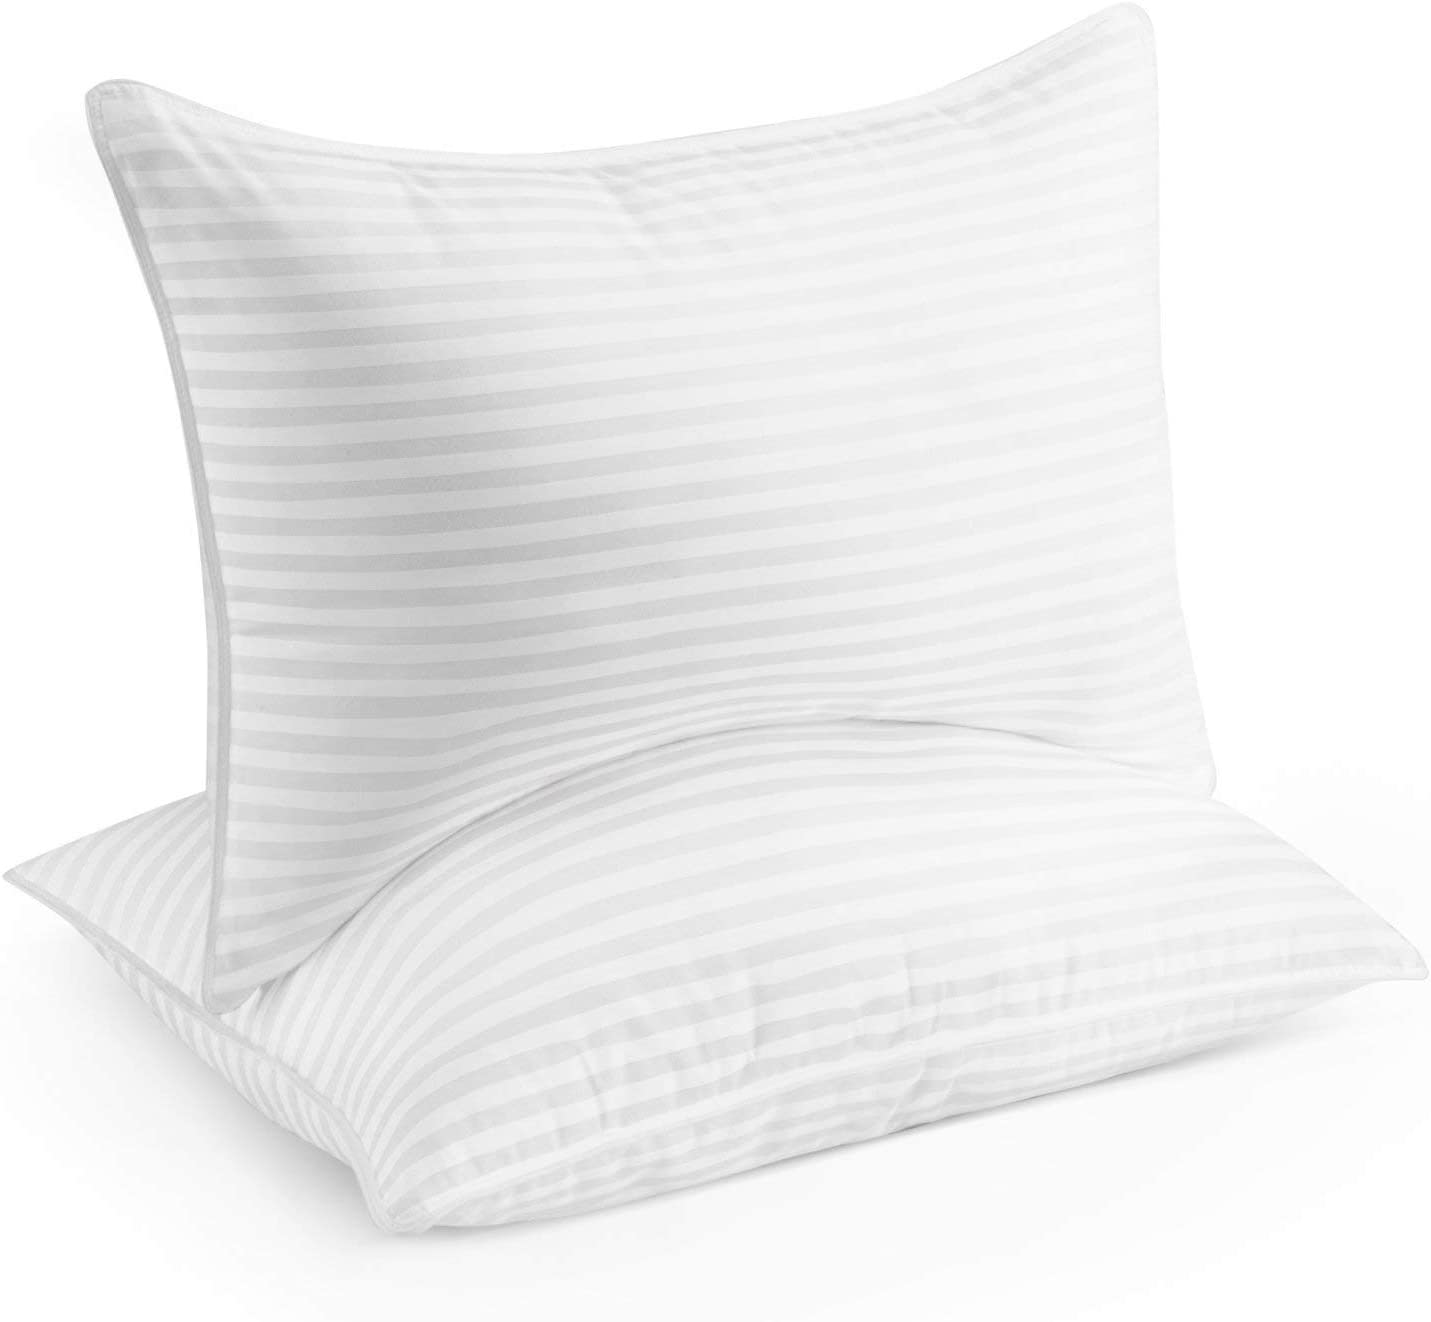 Beckham Hotel Collection Gel Pillow (2-Pack) - Luxury Plush Gel Pillow - Dust Mite Resistant & Hypoallergenic - Queen sleep pillows - 61Z7rY8IUjL - Sleep pillows review – buying guide and review for sleep pillows